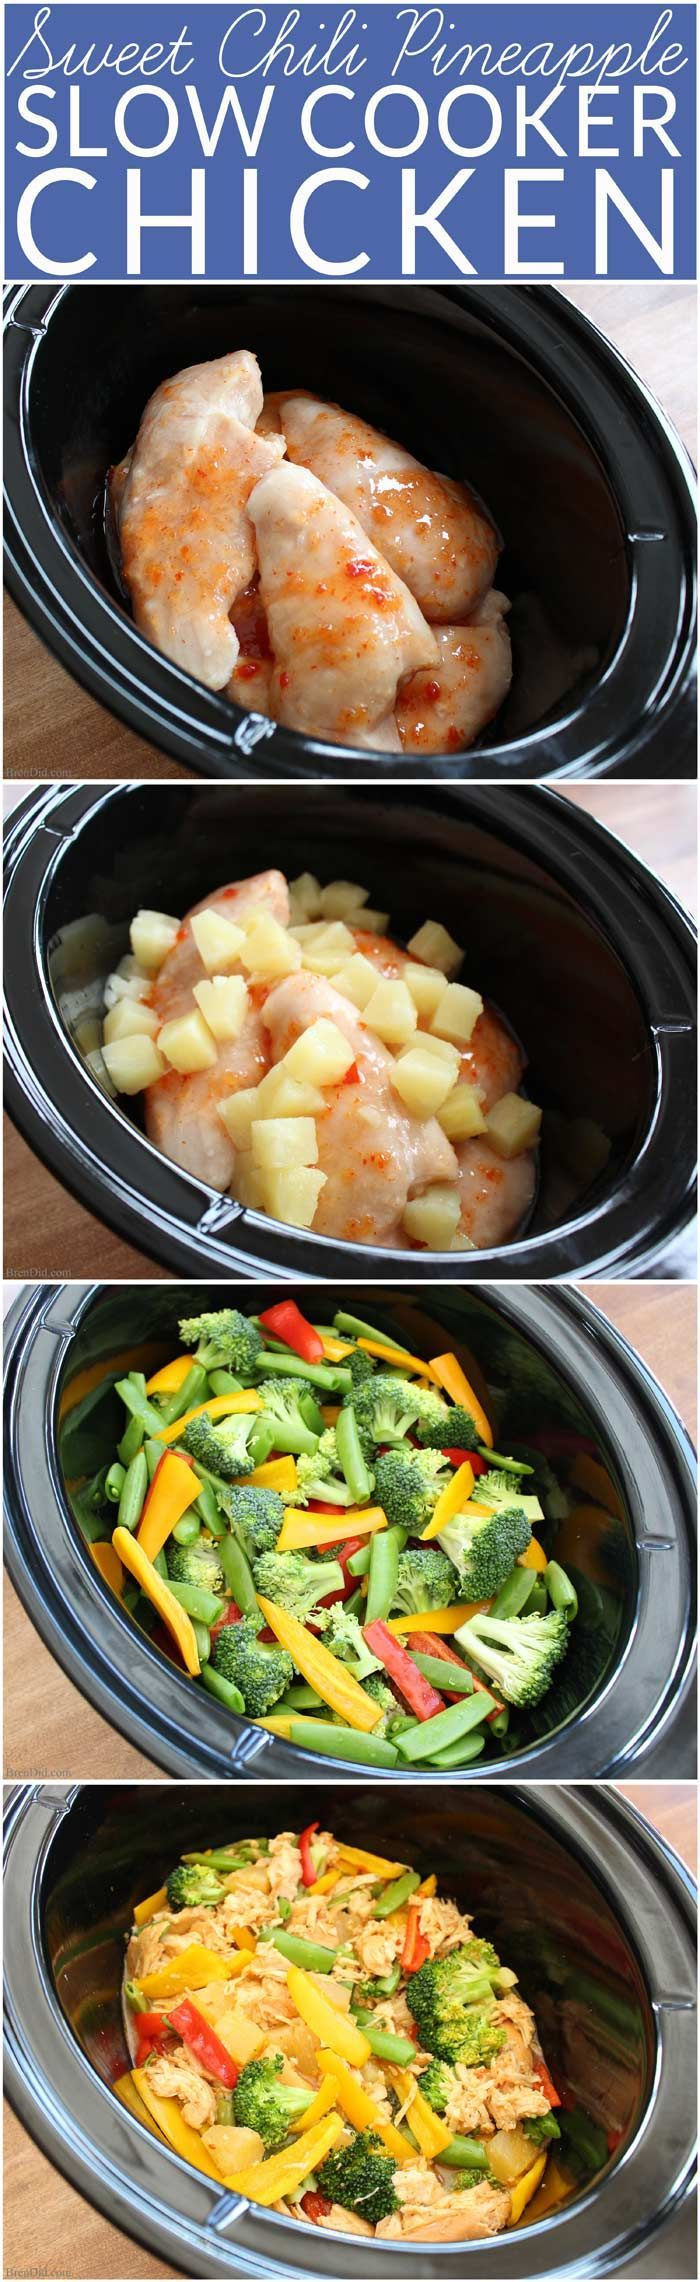 Sweet Chili Pineapple Chicken Easy Slow Cooker Meal– Easy crock pot recipe…